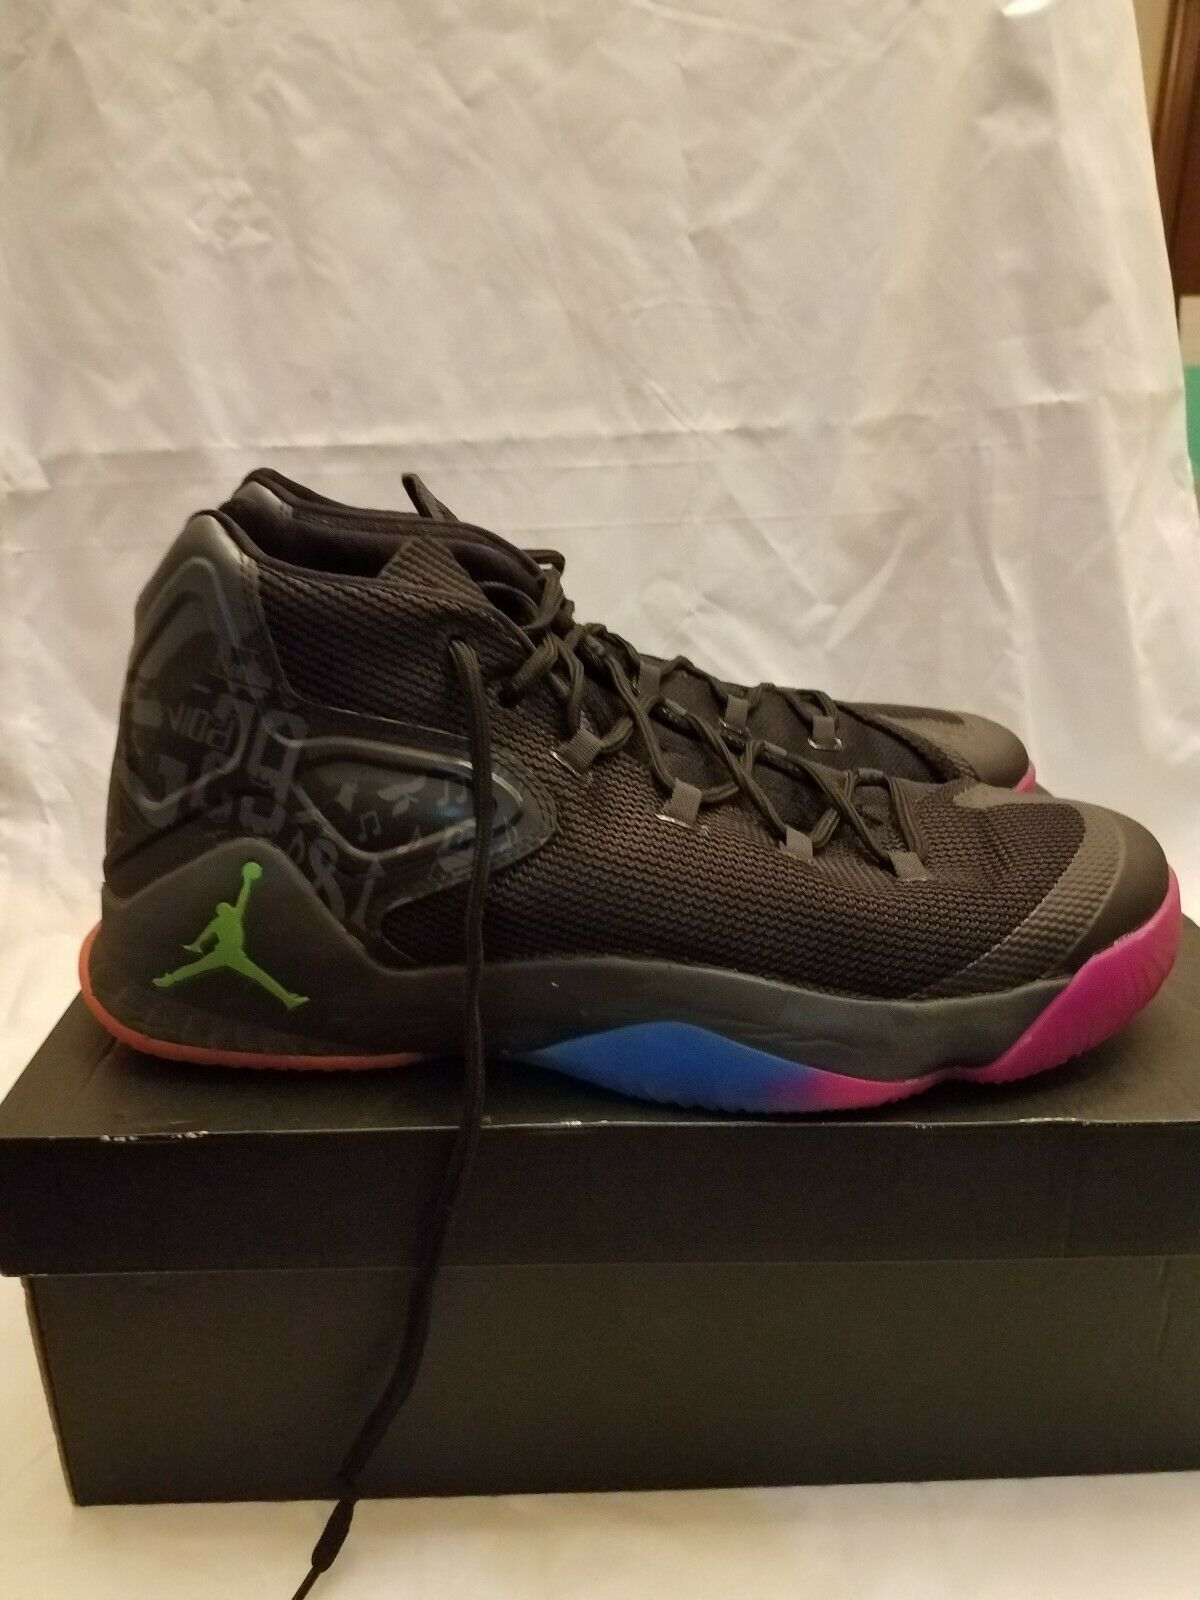 Jordan Melo M12  The Dungeon  827176-030Mens Size 13 - Worn Once - Original Box